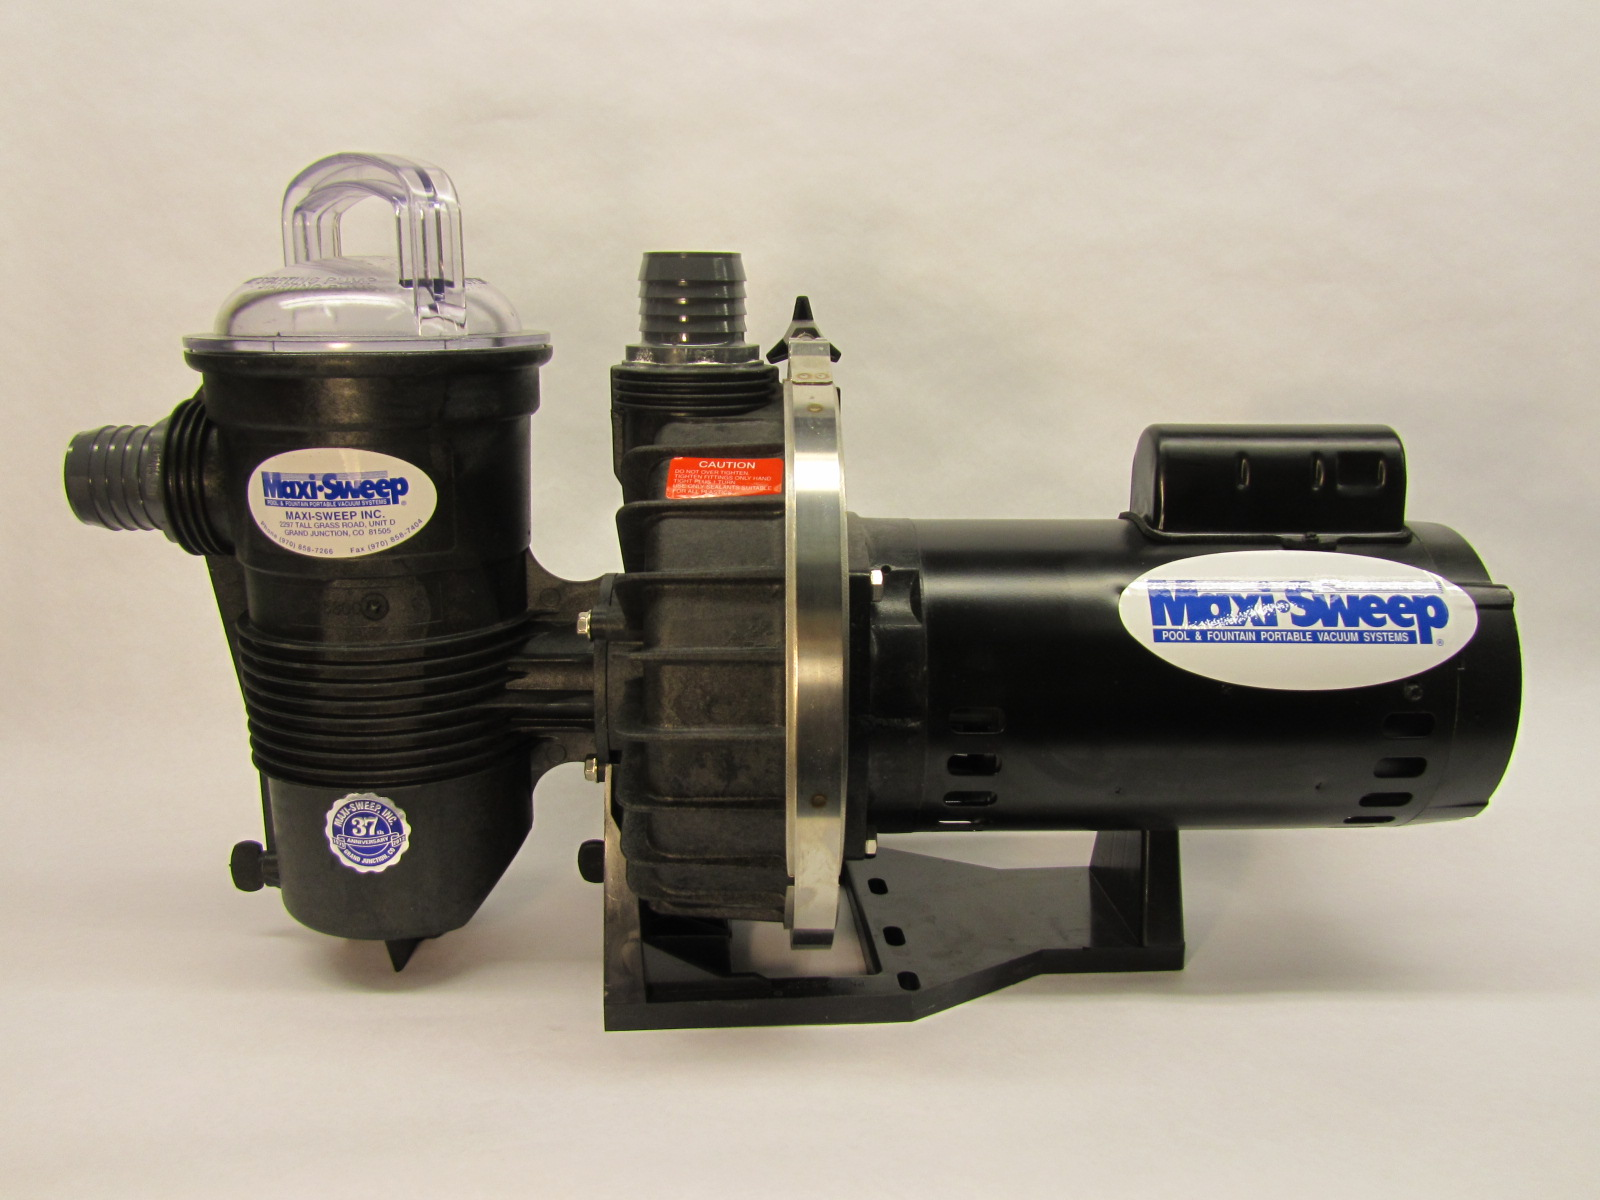 Jacuzzi Pool Vacuum Parts Pump Maxi Sweep Inc